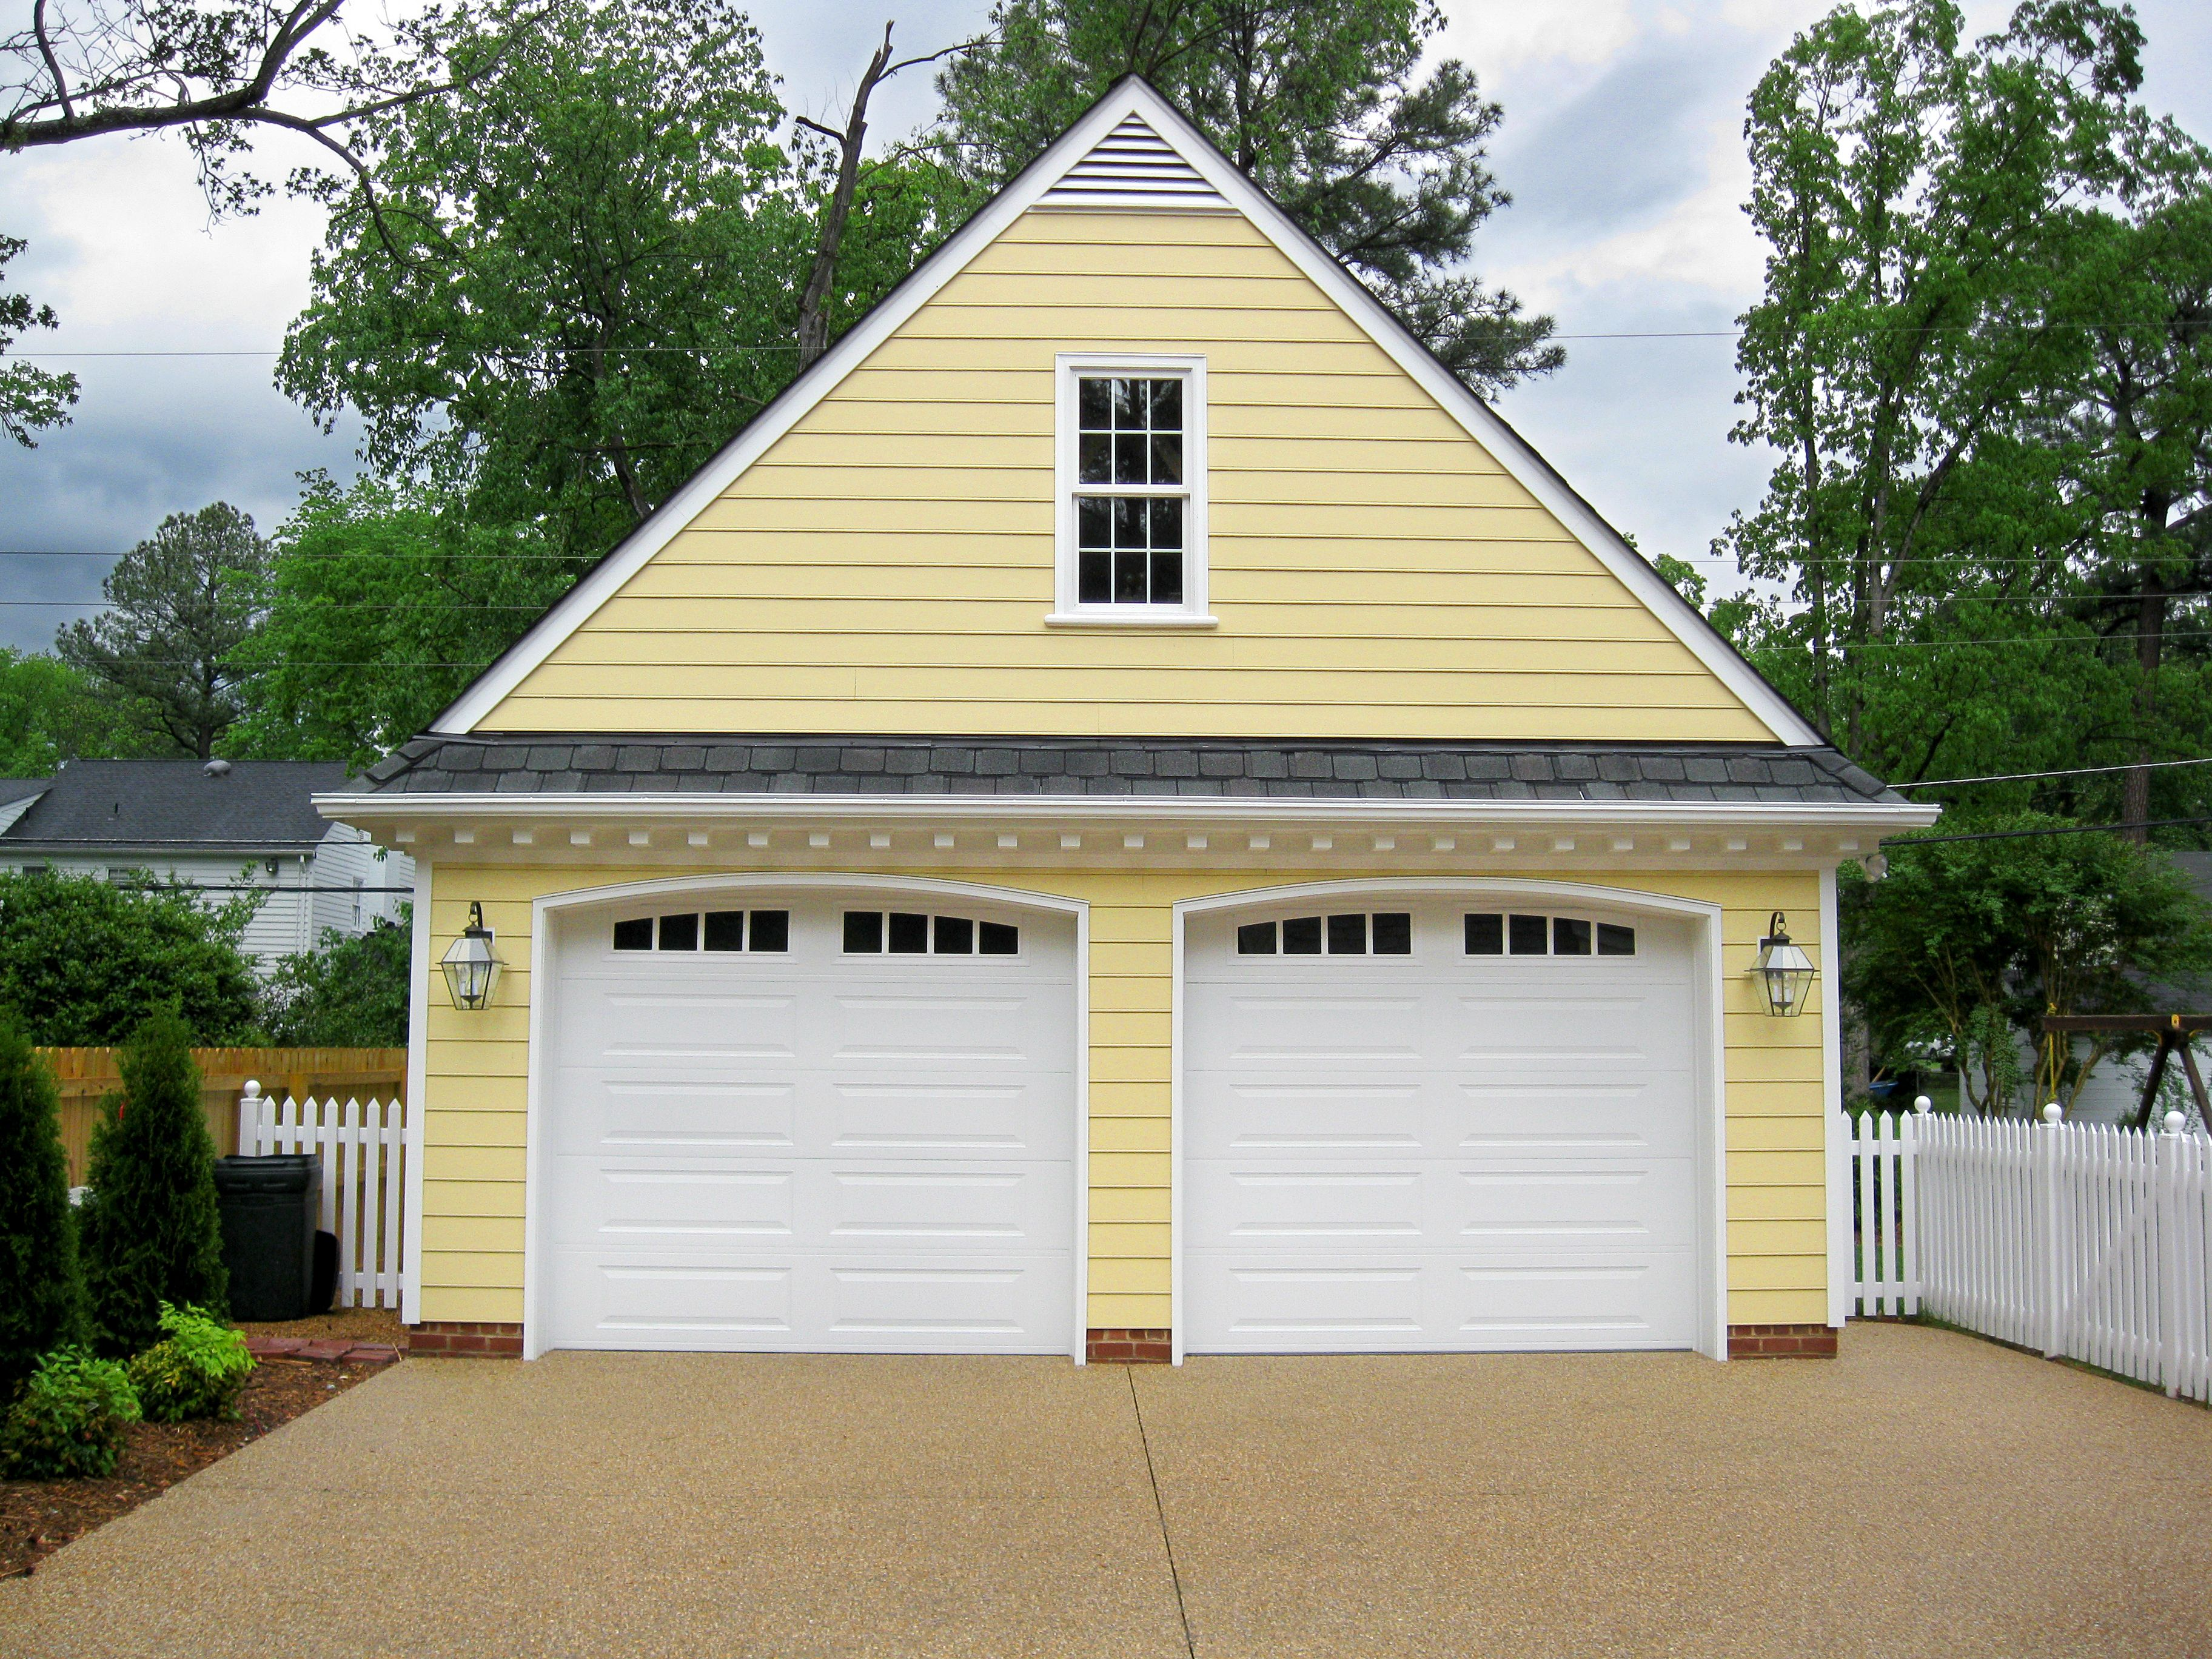 Custom Detached 2 Car Garage With Yellow Siding And White Trim By C Balducci Additions And Remodeling Small House Remodel Garage Remodel Garage Addition